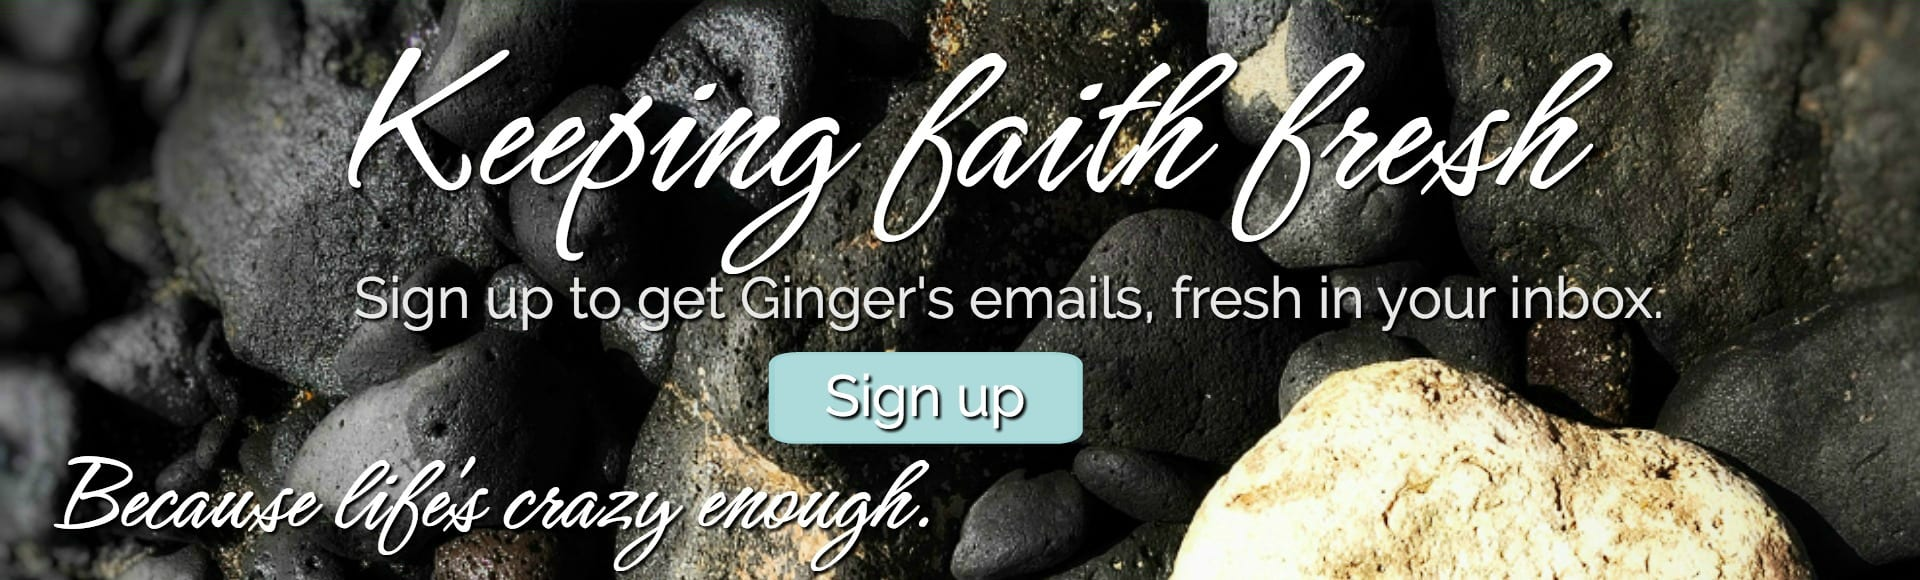 Sign up for Ginger's emails.